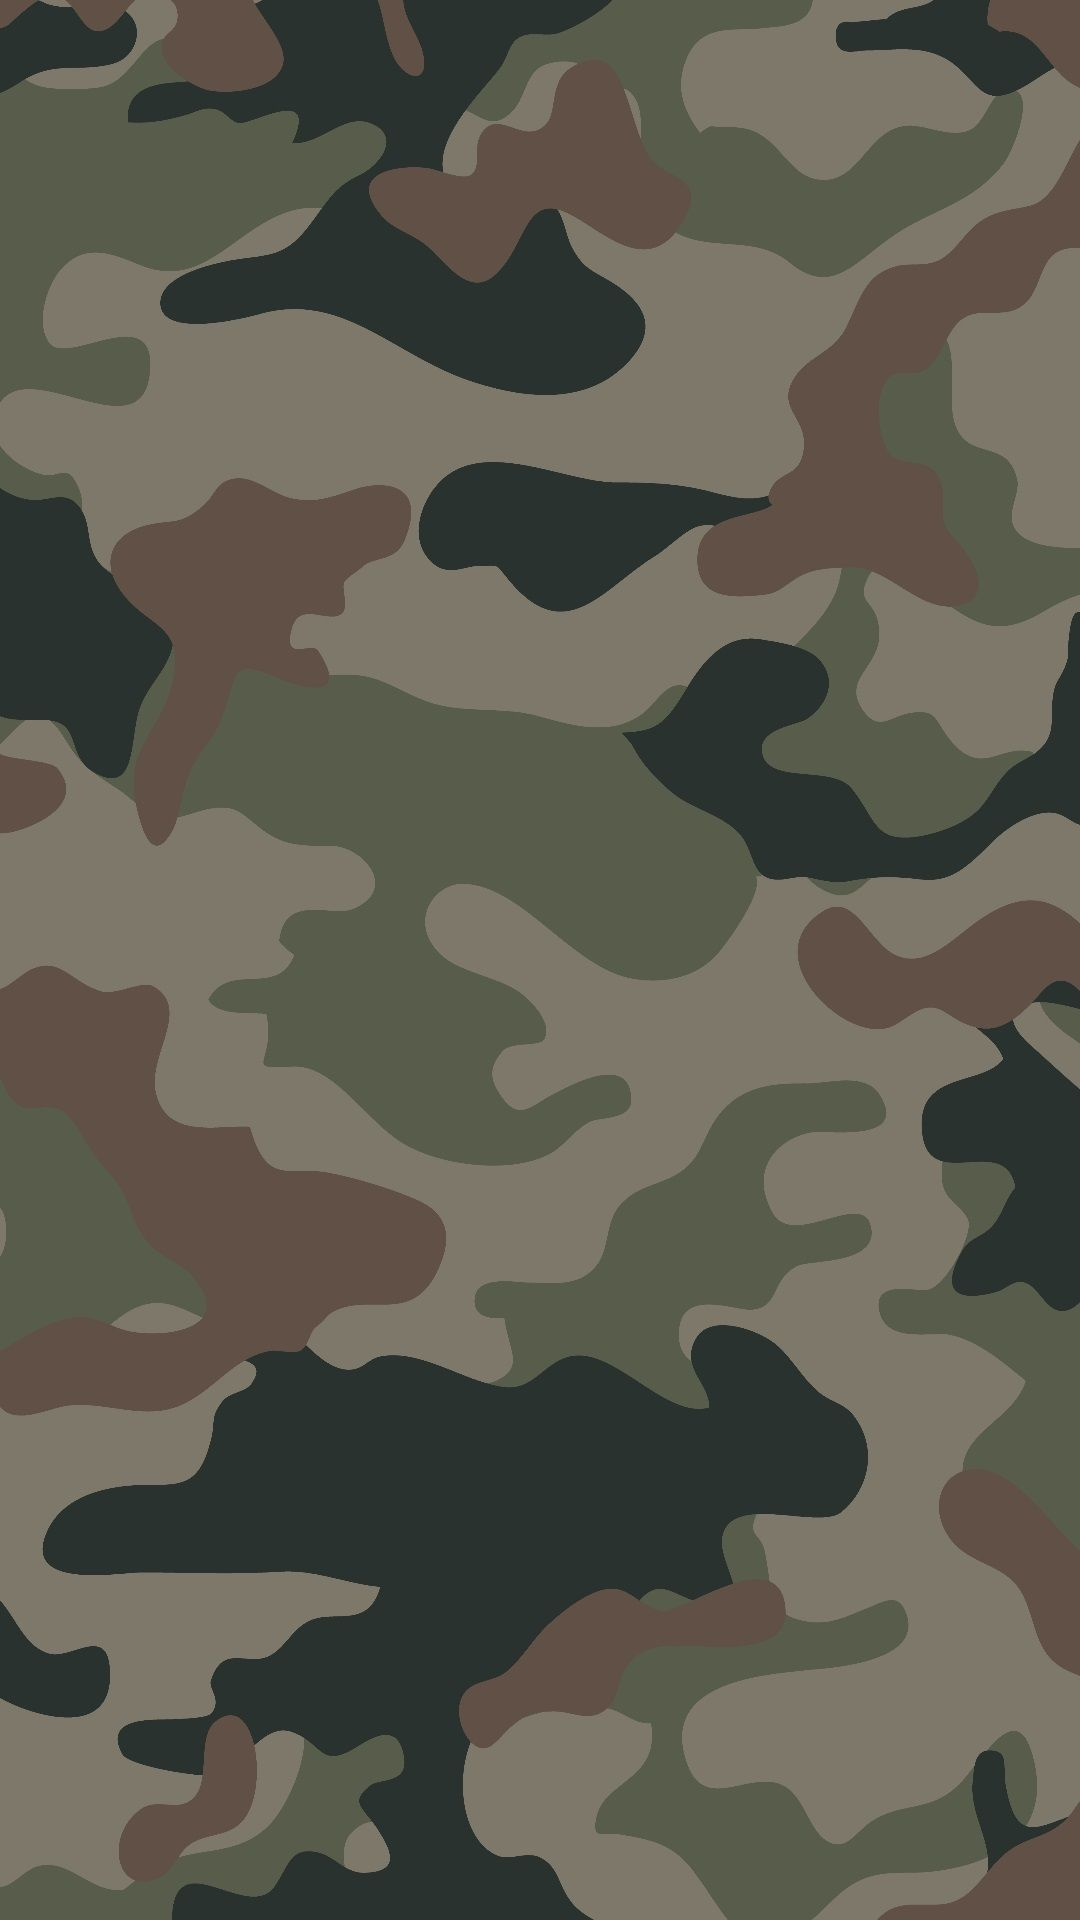 Camouflage Wallpapers Android Apps On Google Play Camo Wallpaper Camouflage Wallpaper Army Wallpaper